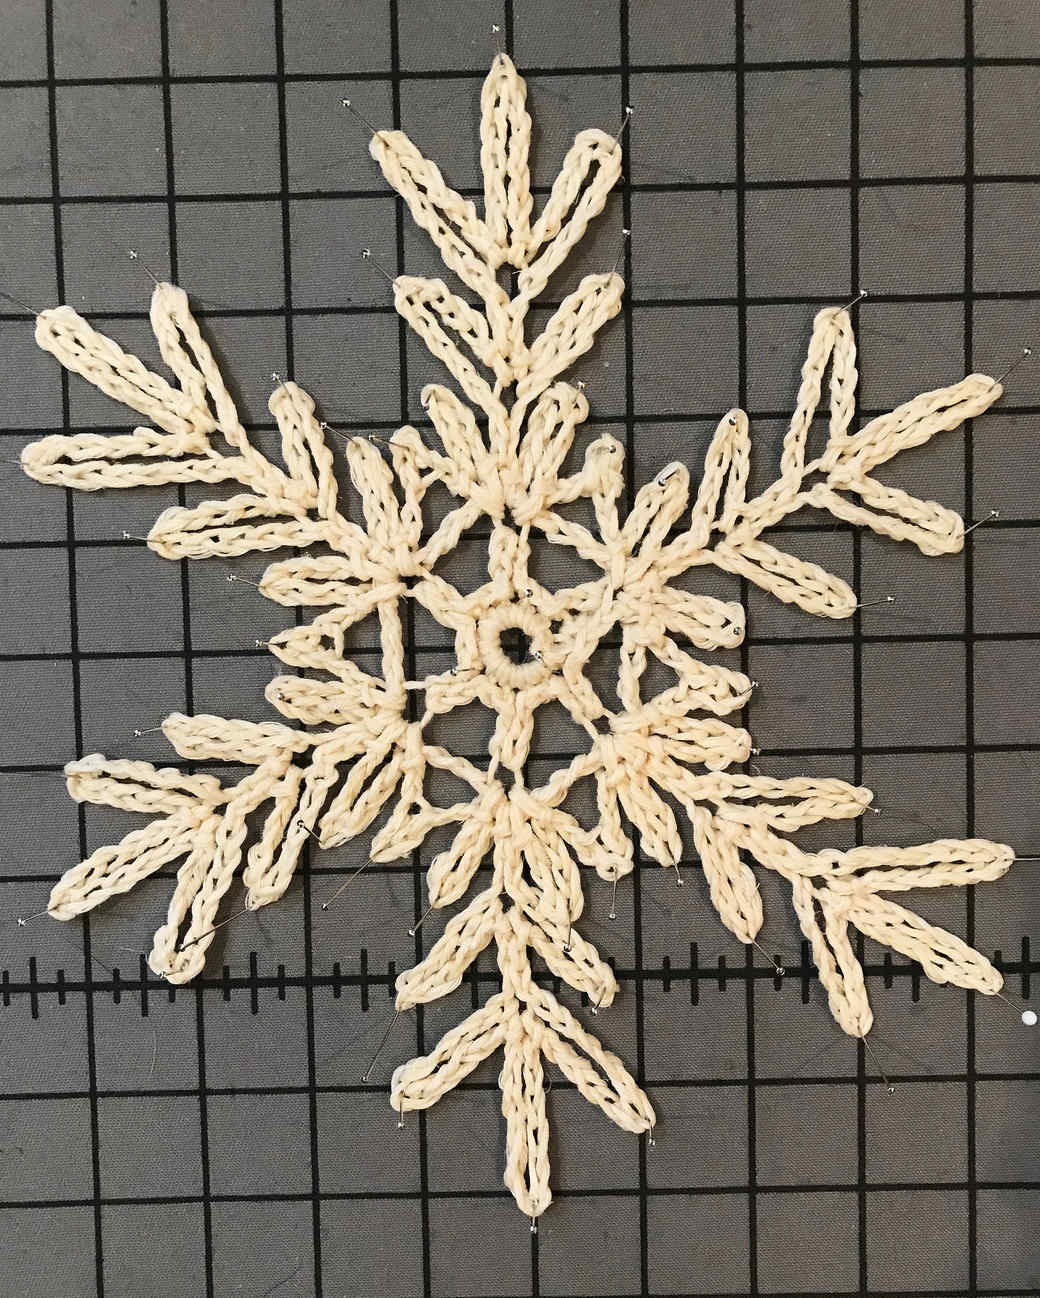 branch-like crochet snowflake pattern 4 on grid background with pins